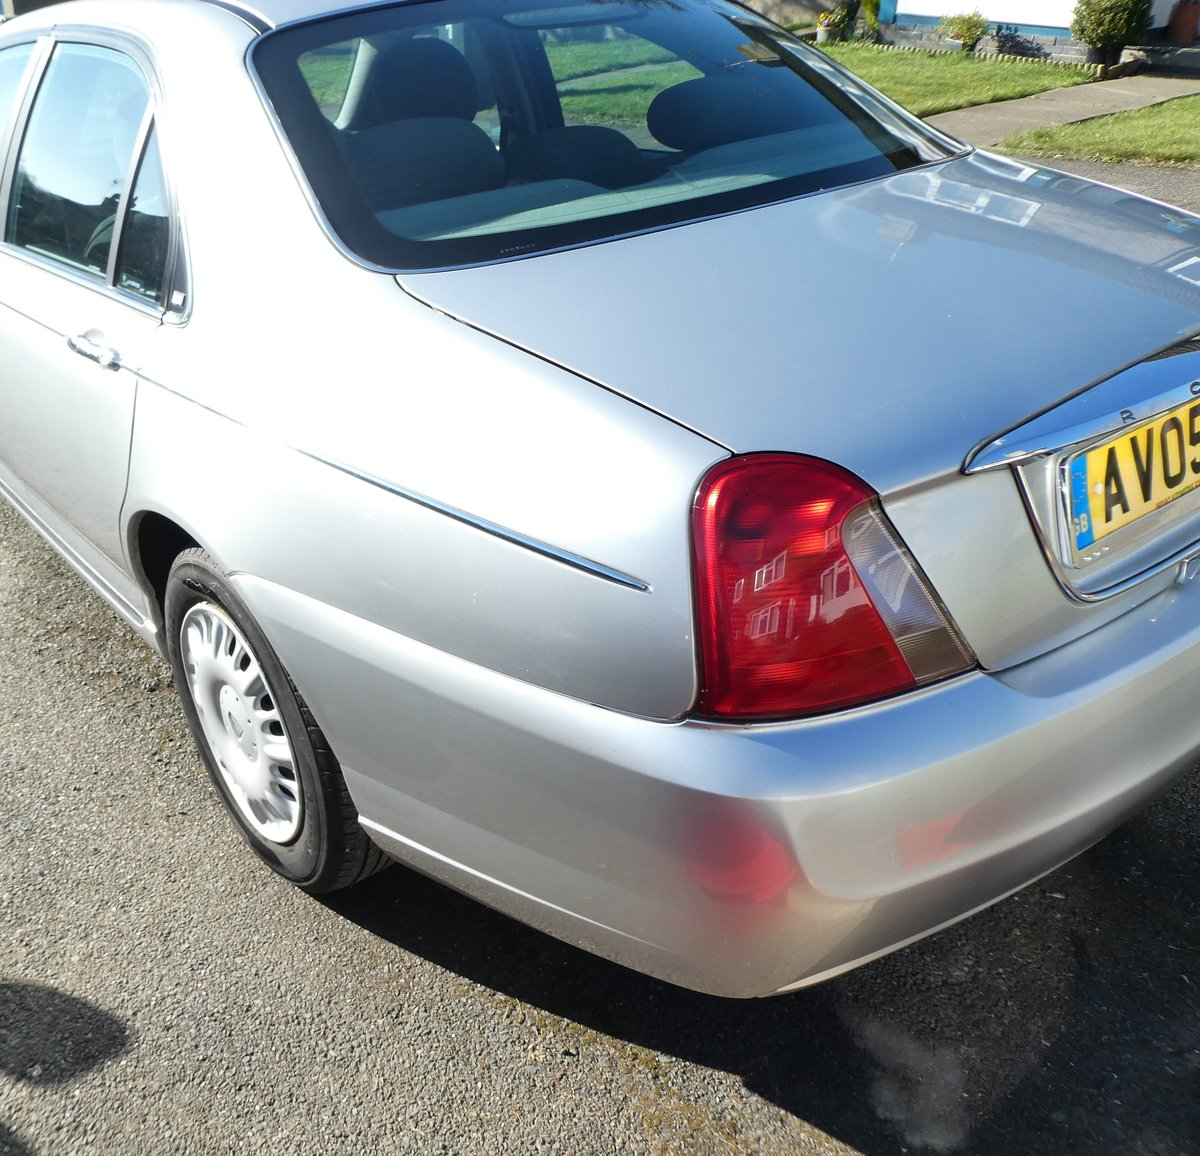 Rover 75 2005 Clasic 1.8 Petrol For Sale (picture 2 of 5)